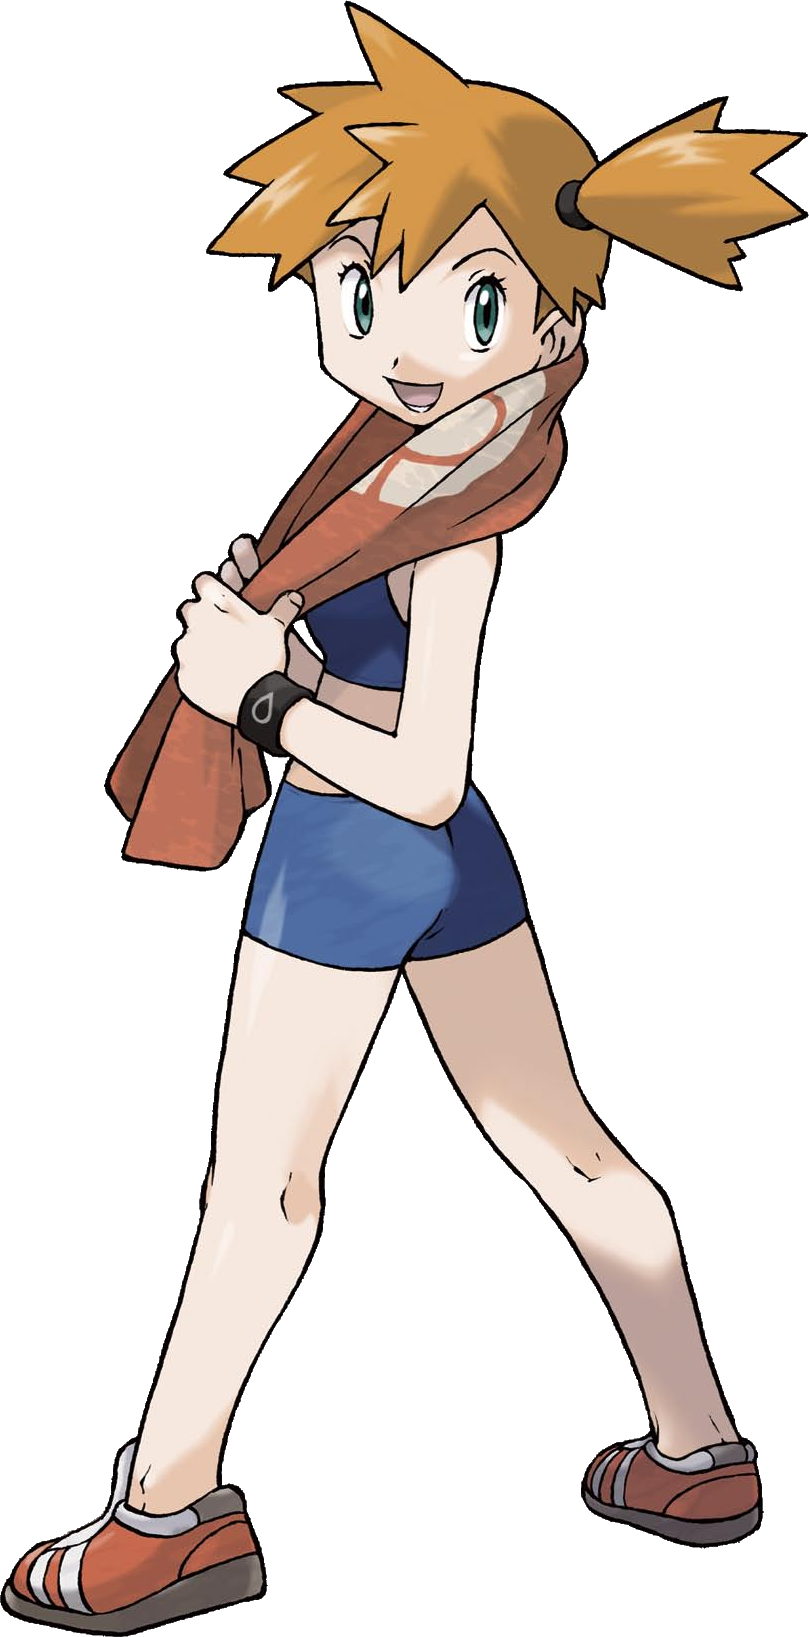 . PlusPng.com file size: 593 KB, MIME type: image/png) - Pokemon People PNG